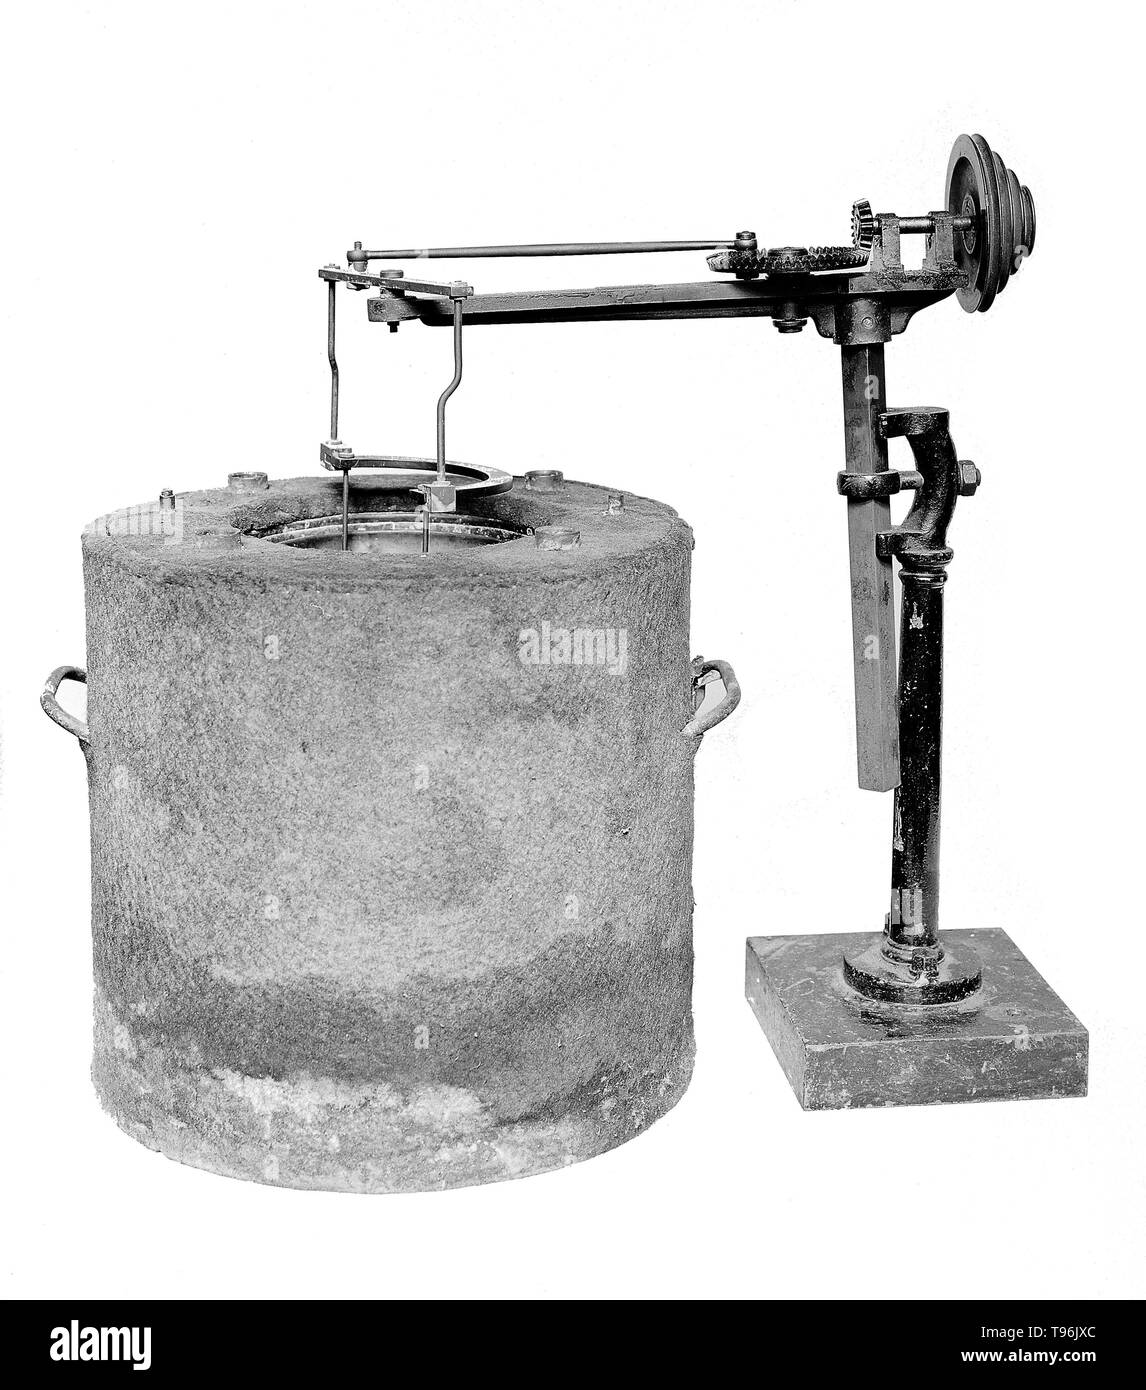 Calorimeter designed and used by Berthelot for determining heat developed in chemical reactions. Pierre Eugène Marcellin Berthelot (October 25, 1827 - March 18, 1907) was a French chemist and politician noted for the Thomsen-Berthelot principle of thermochemistry which argued that all chemical changes are accompanied by the production of heat and that processes which occur will be ones in which the most heat is produced. He synthesized many organic compounds from inorganic substances and disproved the theory of vitalism. He is considered as one of the greatest chemists of all time. The fundame - Stock Image